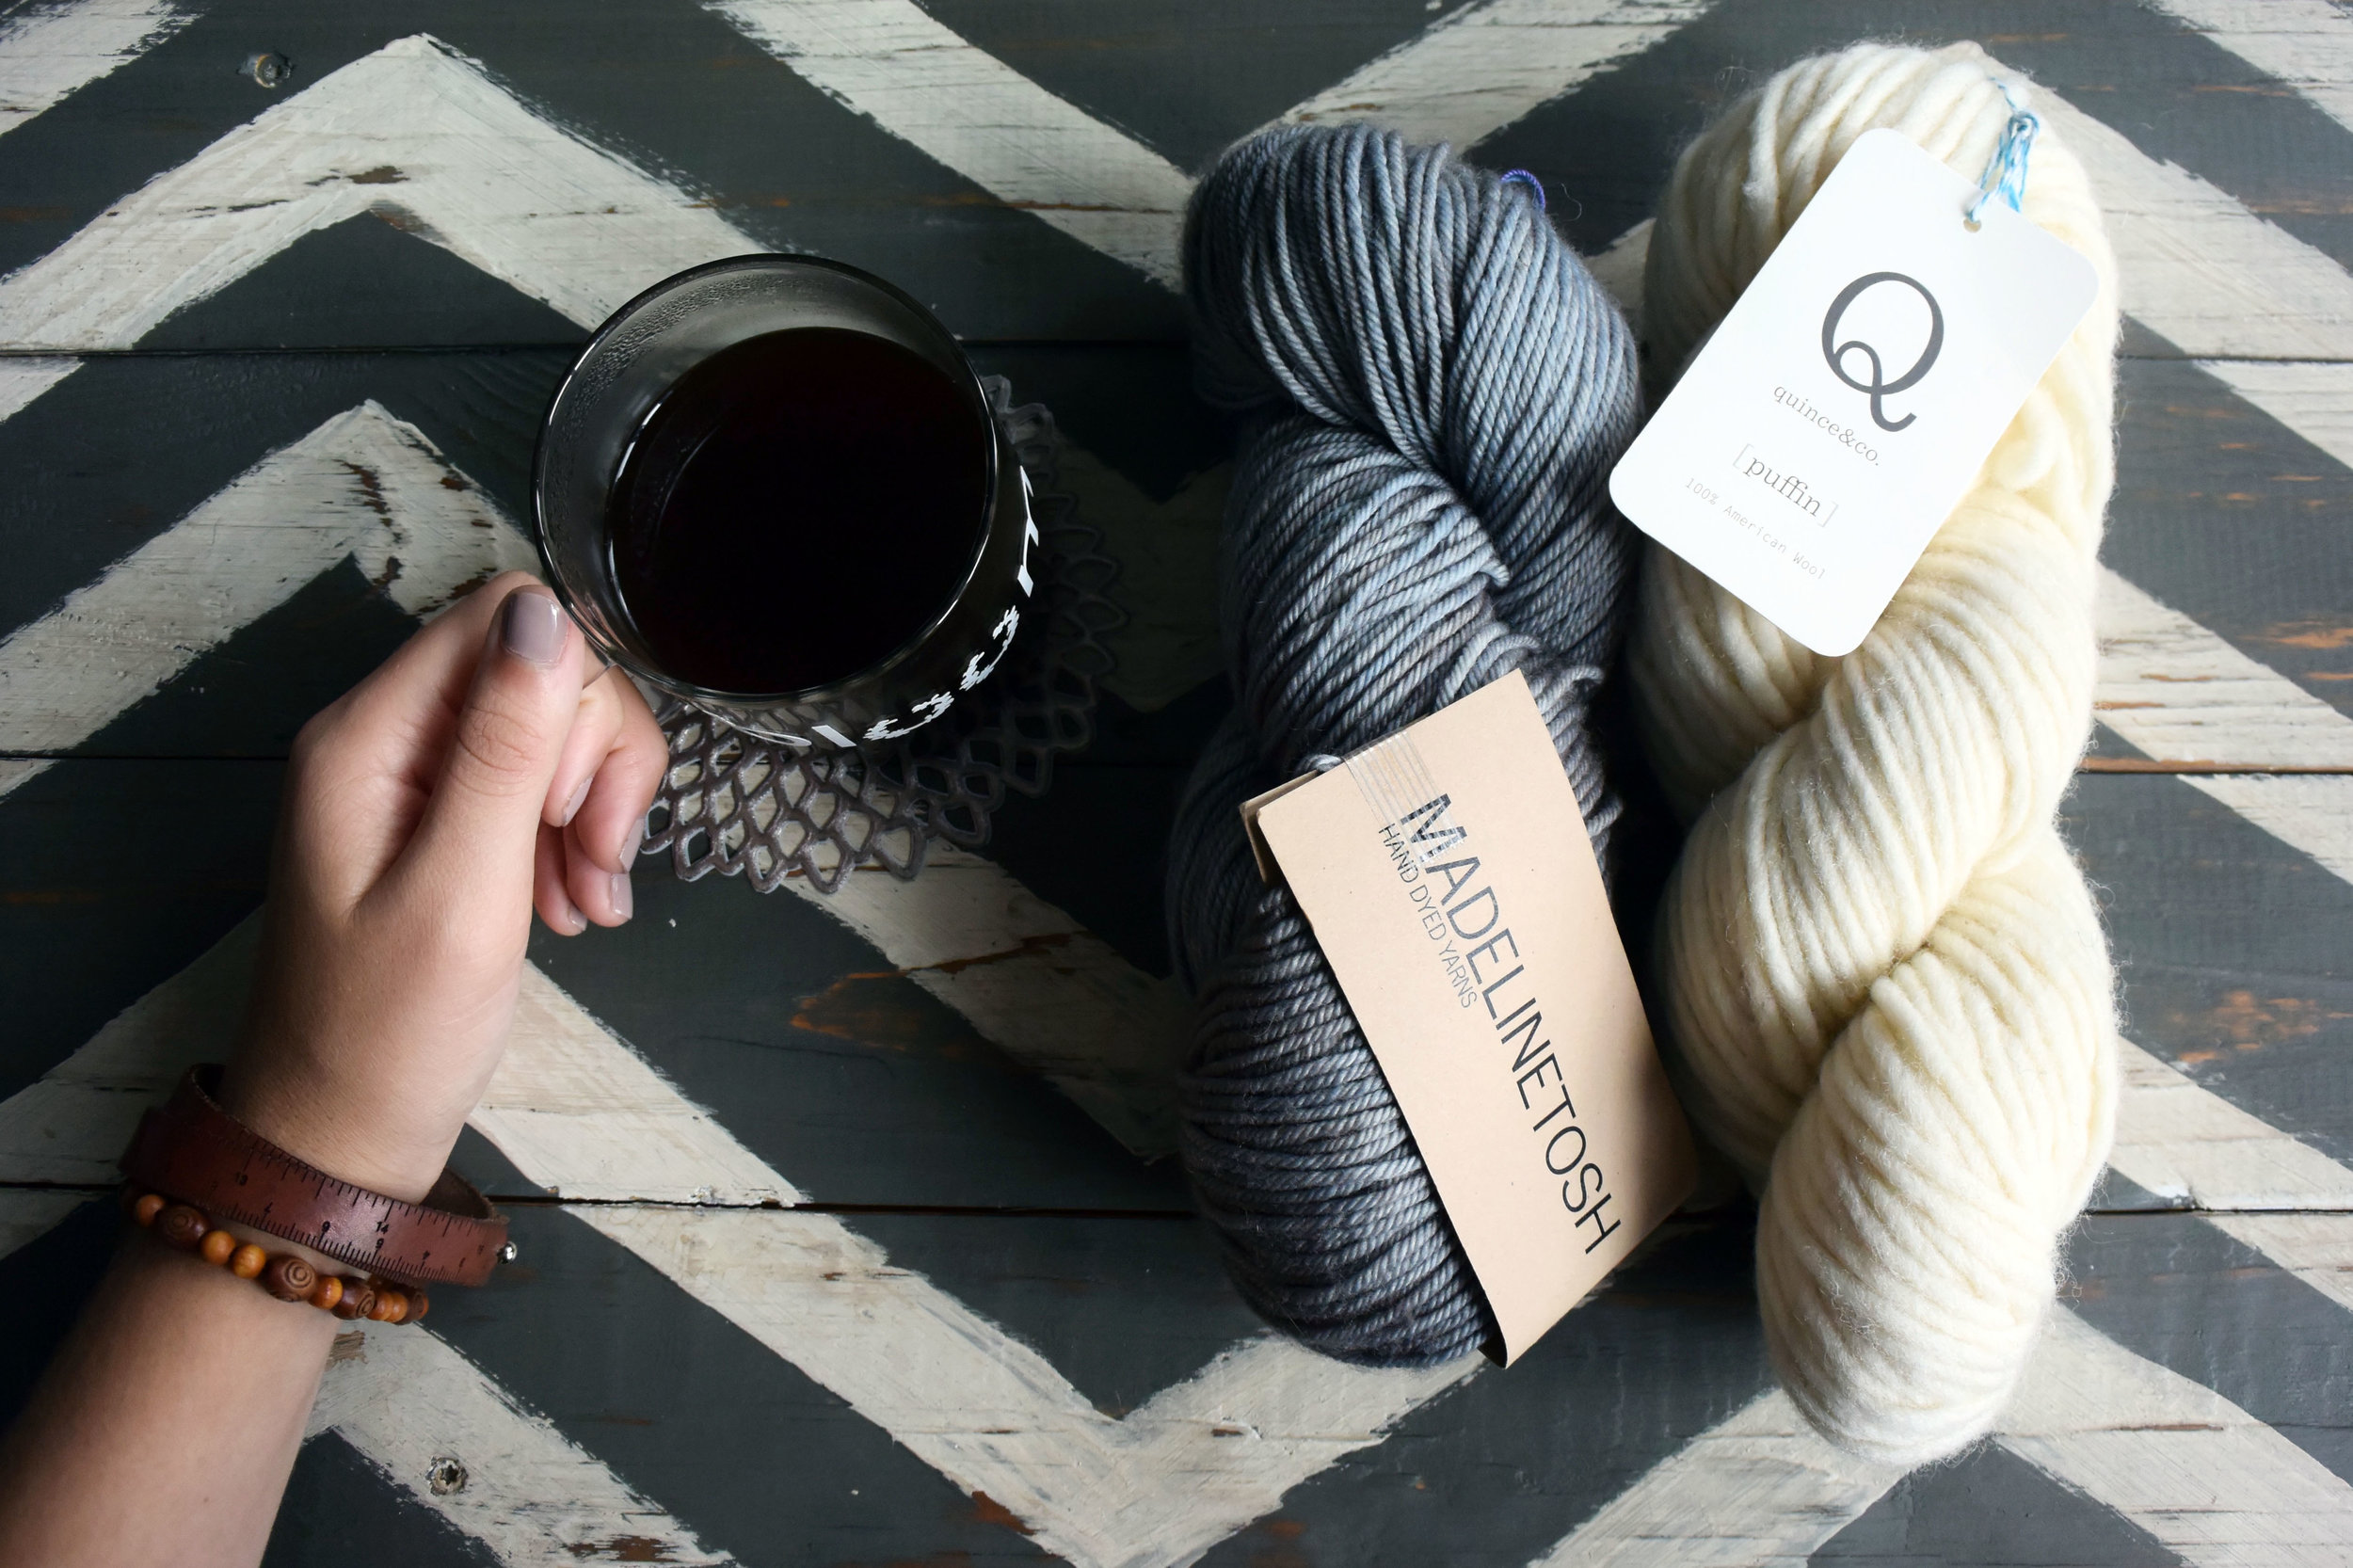 This skein of Madelinetosh DK Twist (100% wool) in Fallen Cloud was on my to-do list last week, & it has since been knit up into another piece of the Fall 2017 collection: a perfectly slouchy beanie. The skein of Quince & Co.  Puffin  in undyed Egret to the right was also knit up into a new piece, but more on that later. And, of course, the bloom coffee mug (my favorite!) is available for purchase  here  & also on  Etsy .